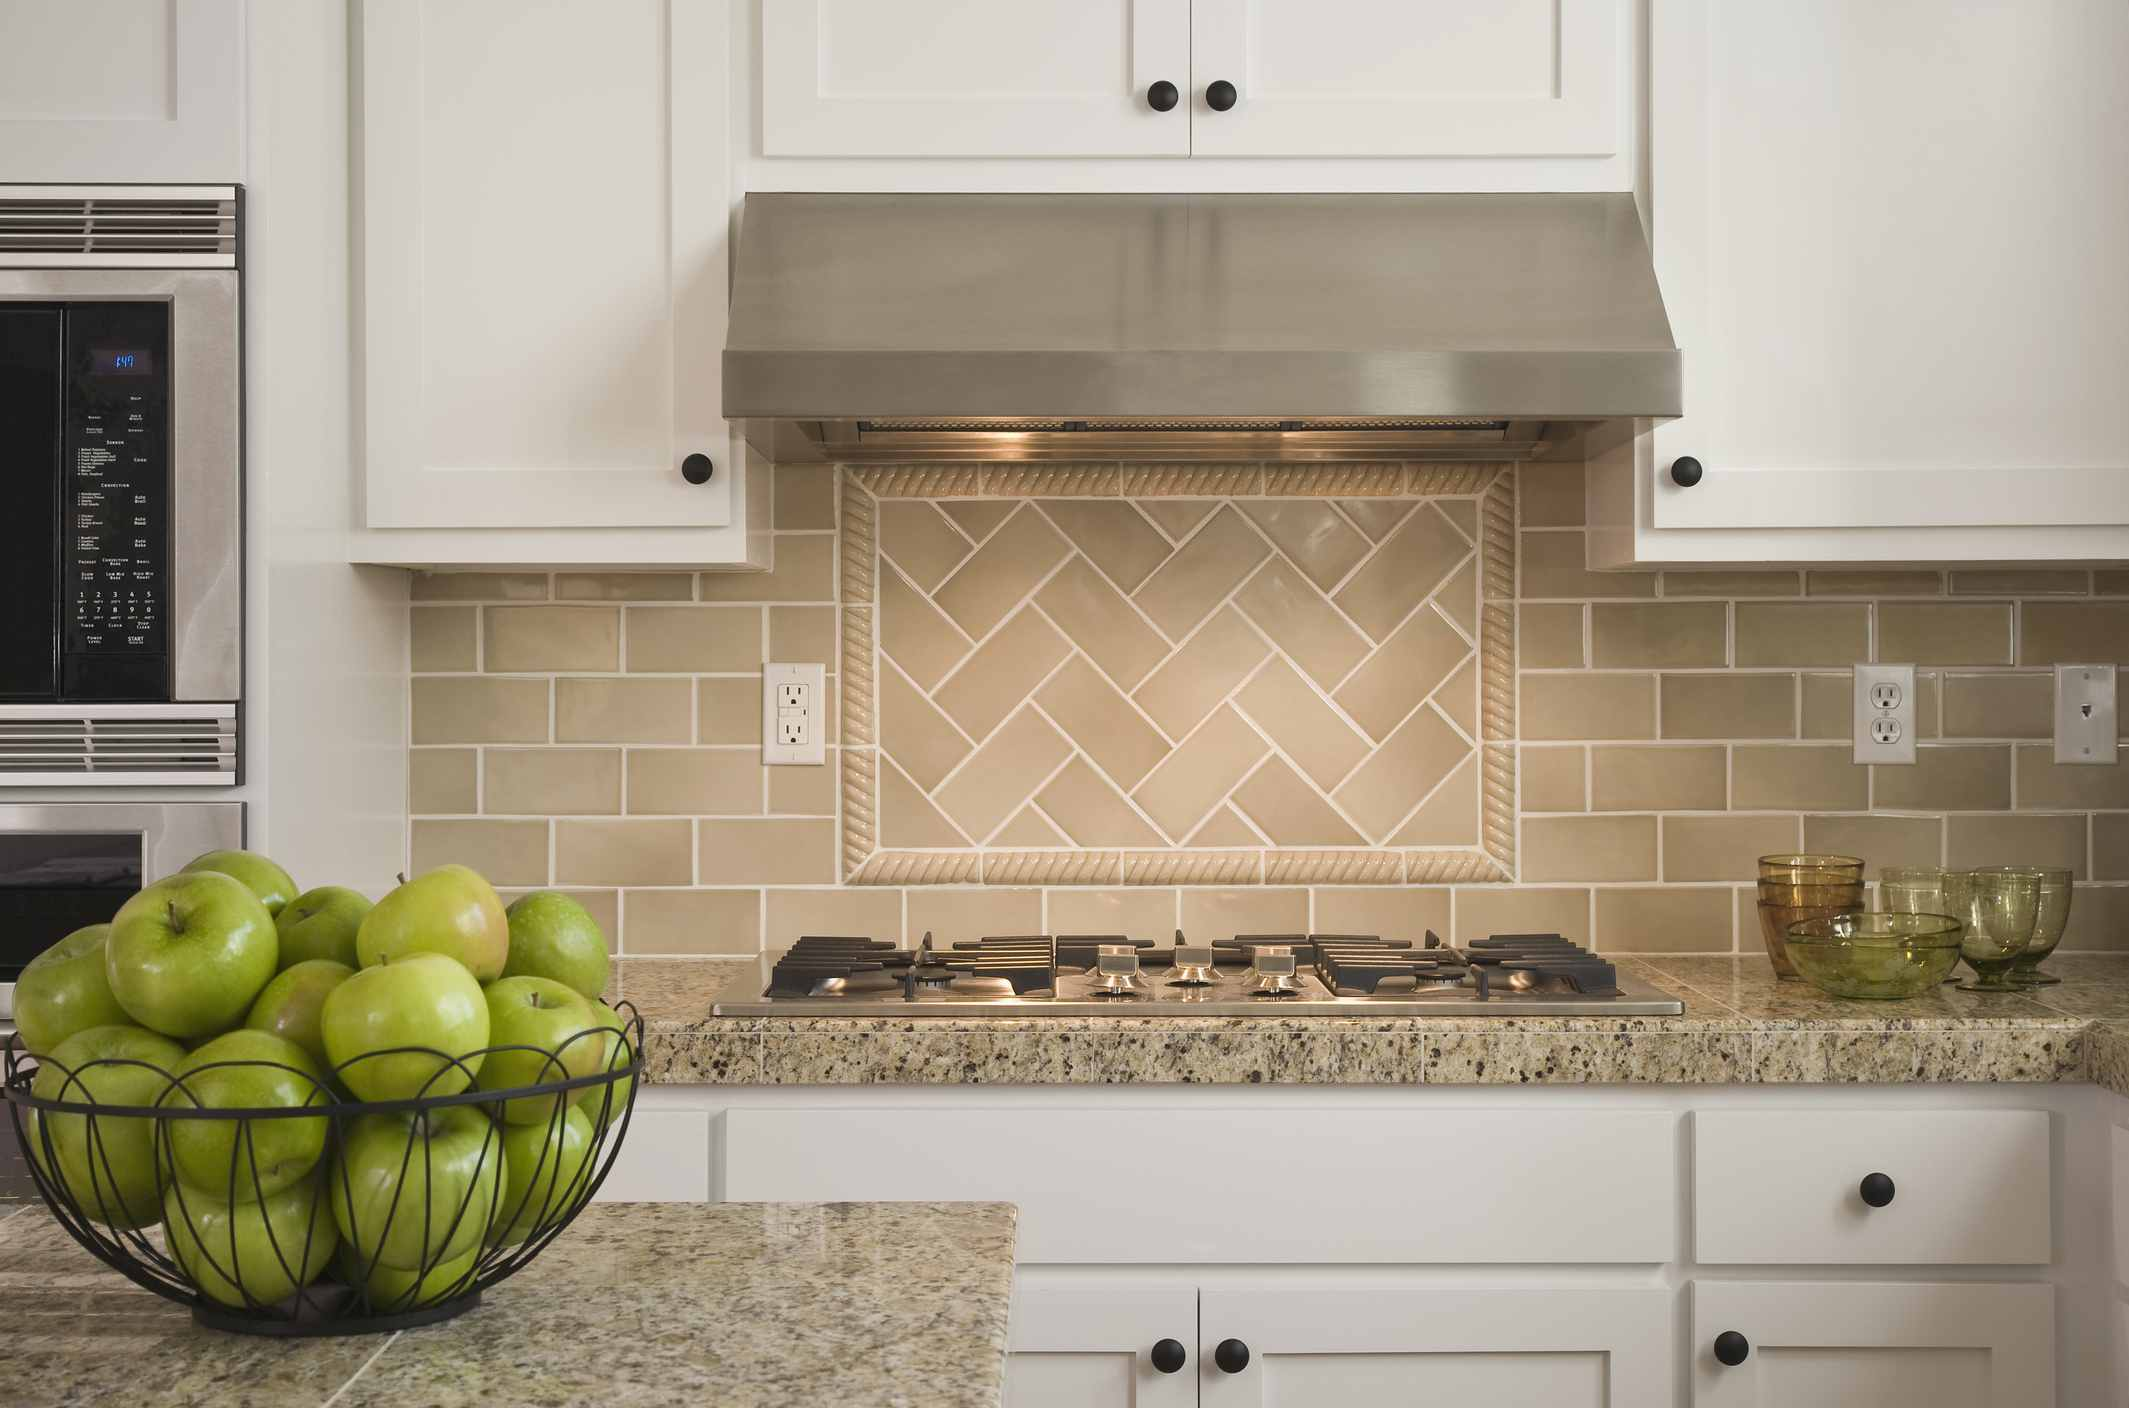 Kitchen Backsplash Subway Tile Design Ideas